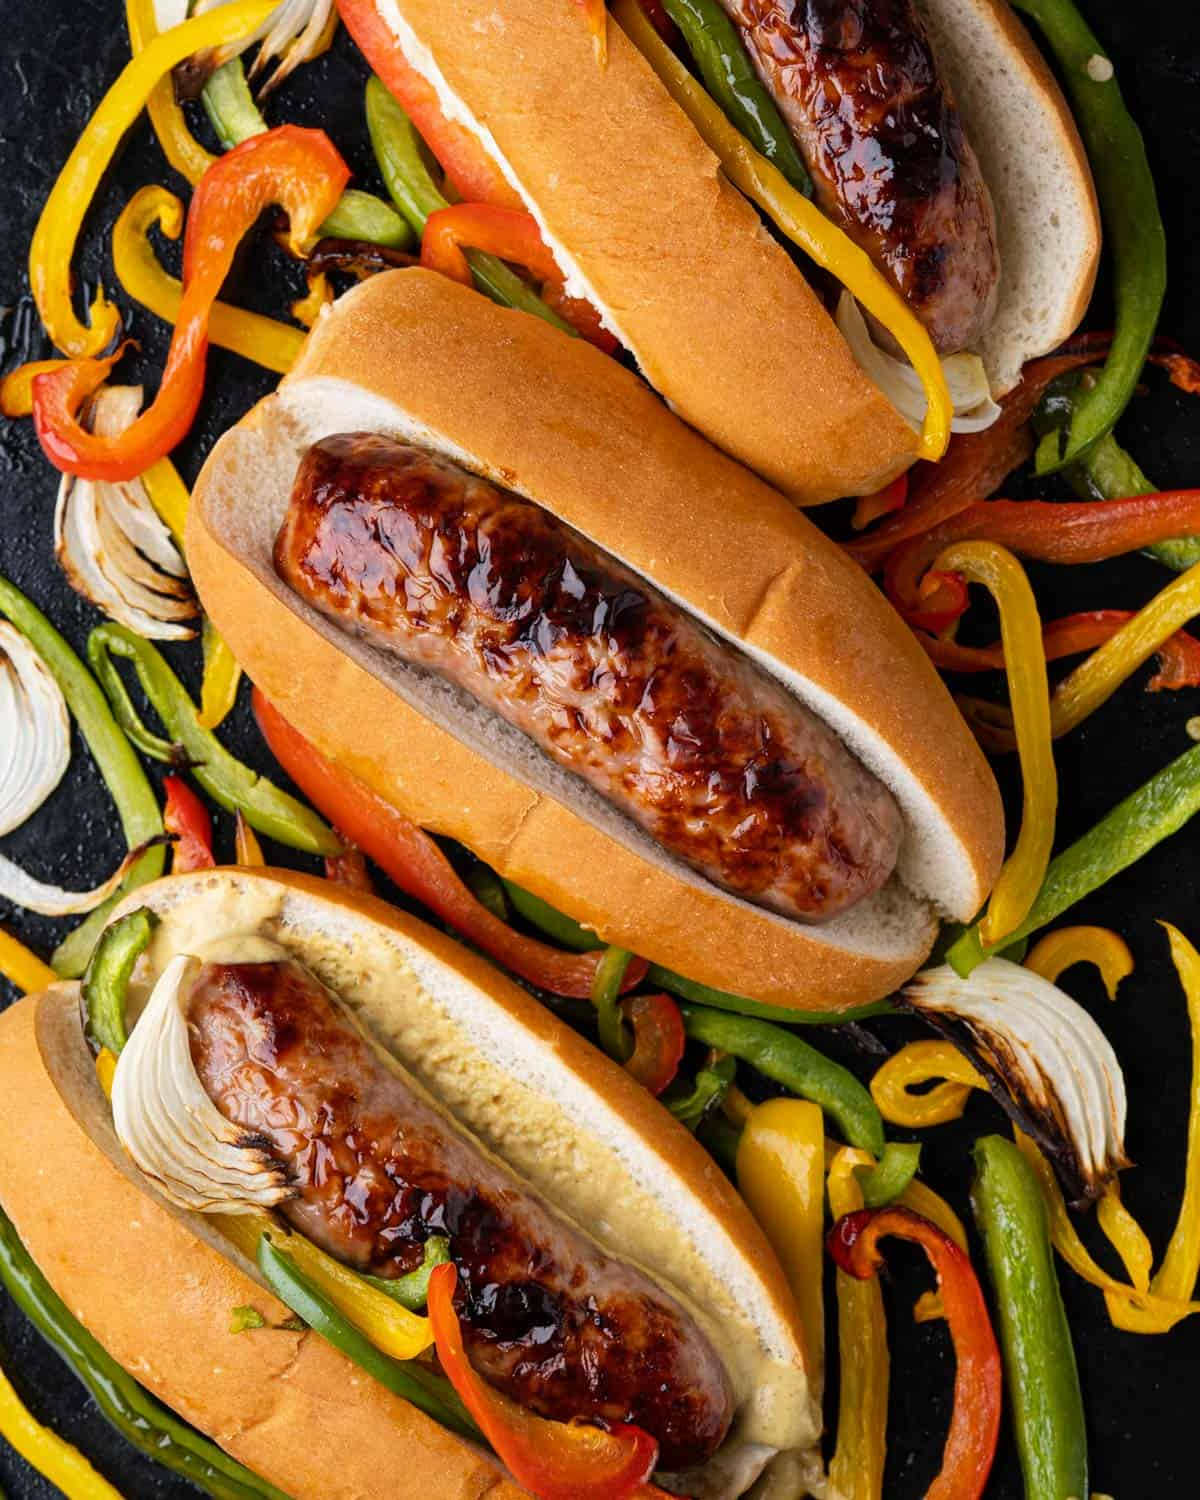 Brats inside buns with grilled onions and peppers